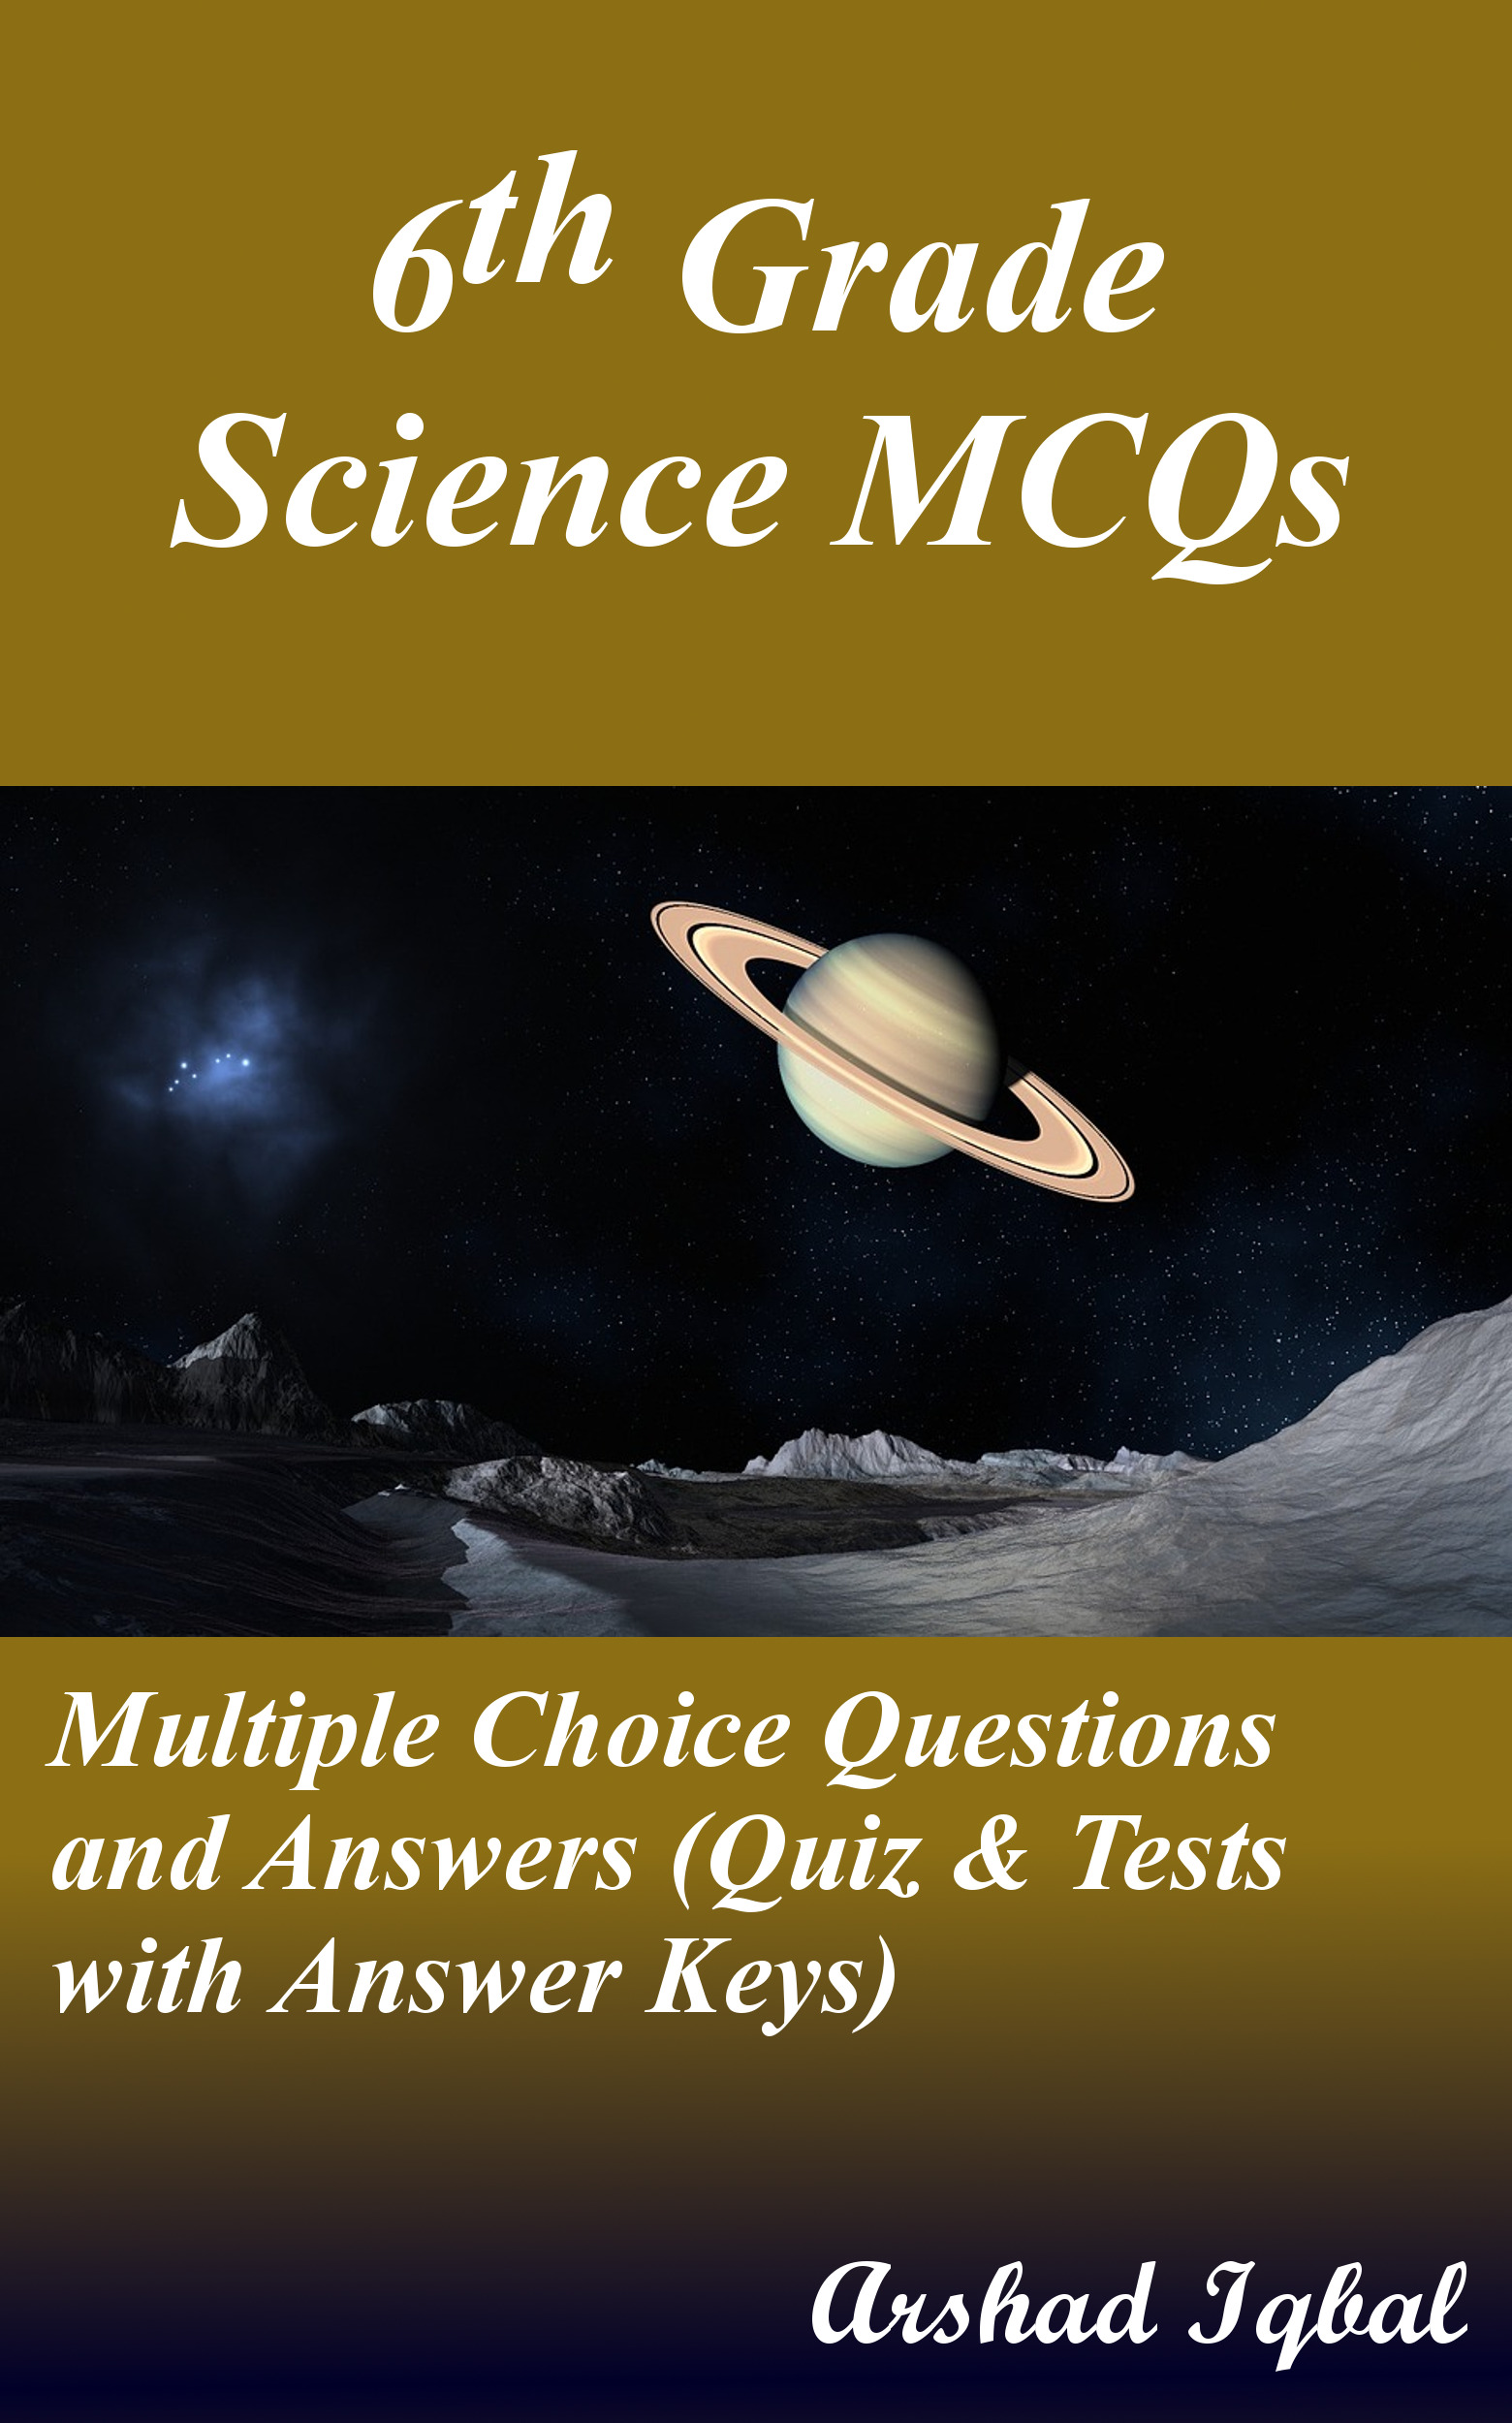 Grade 6 Science MCQs: Multiple Choice Questions and Answers (Quiz & Tests with Answer Keys)